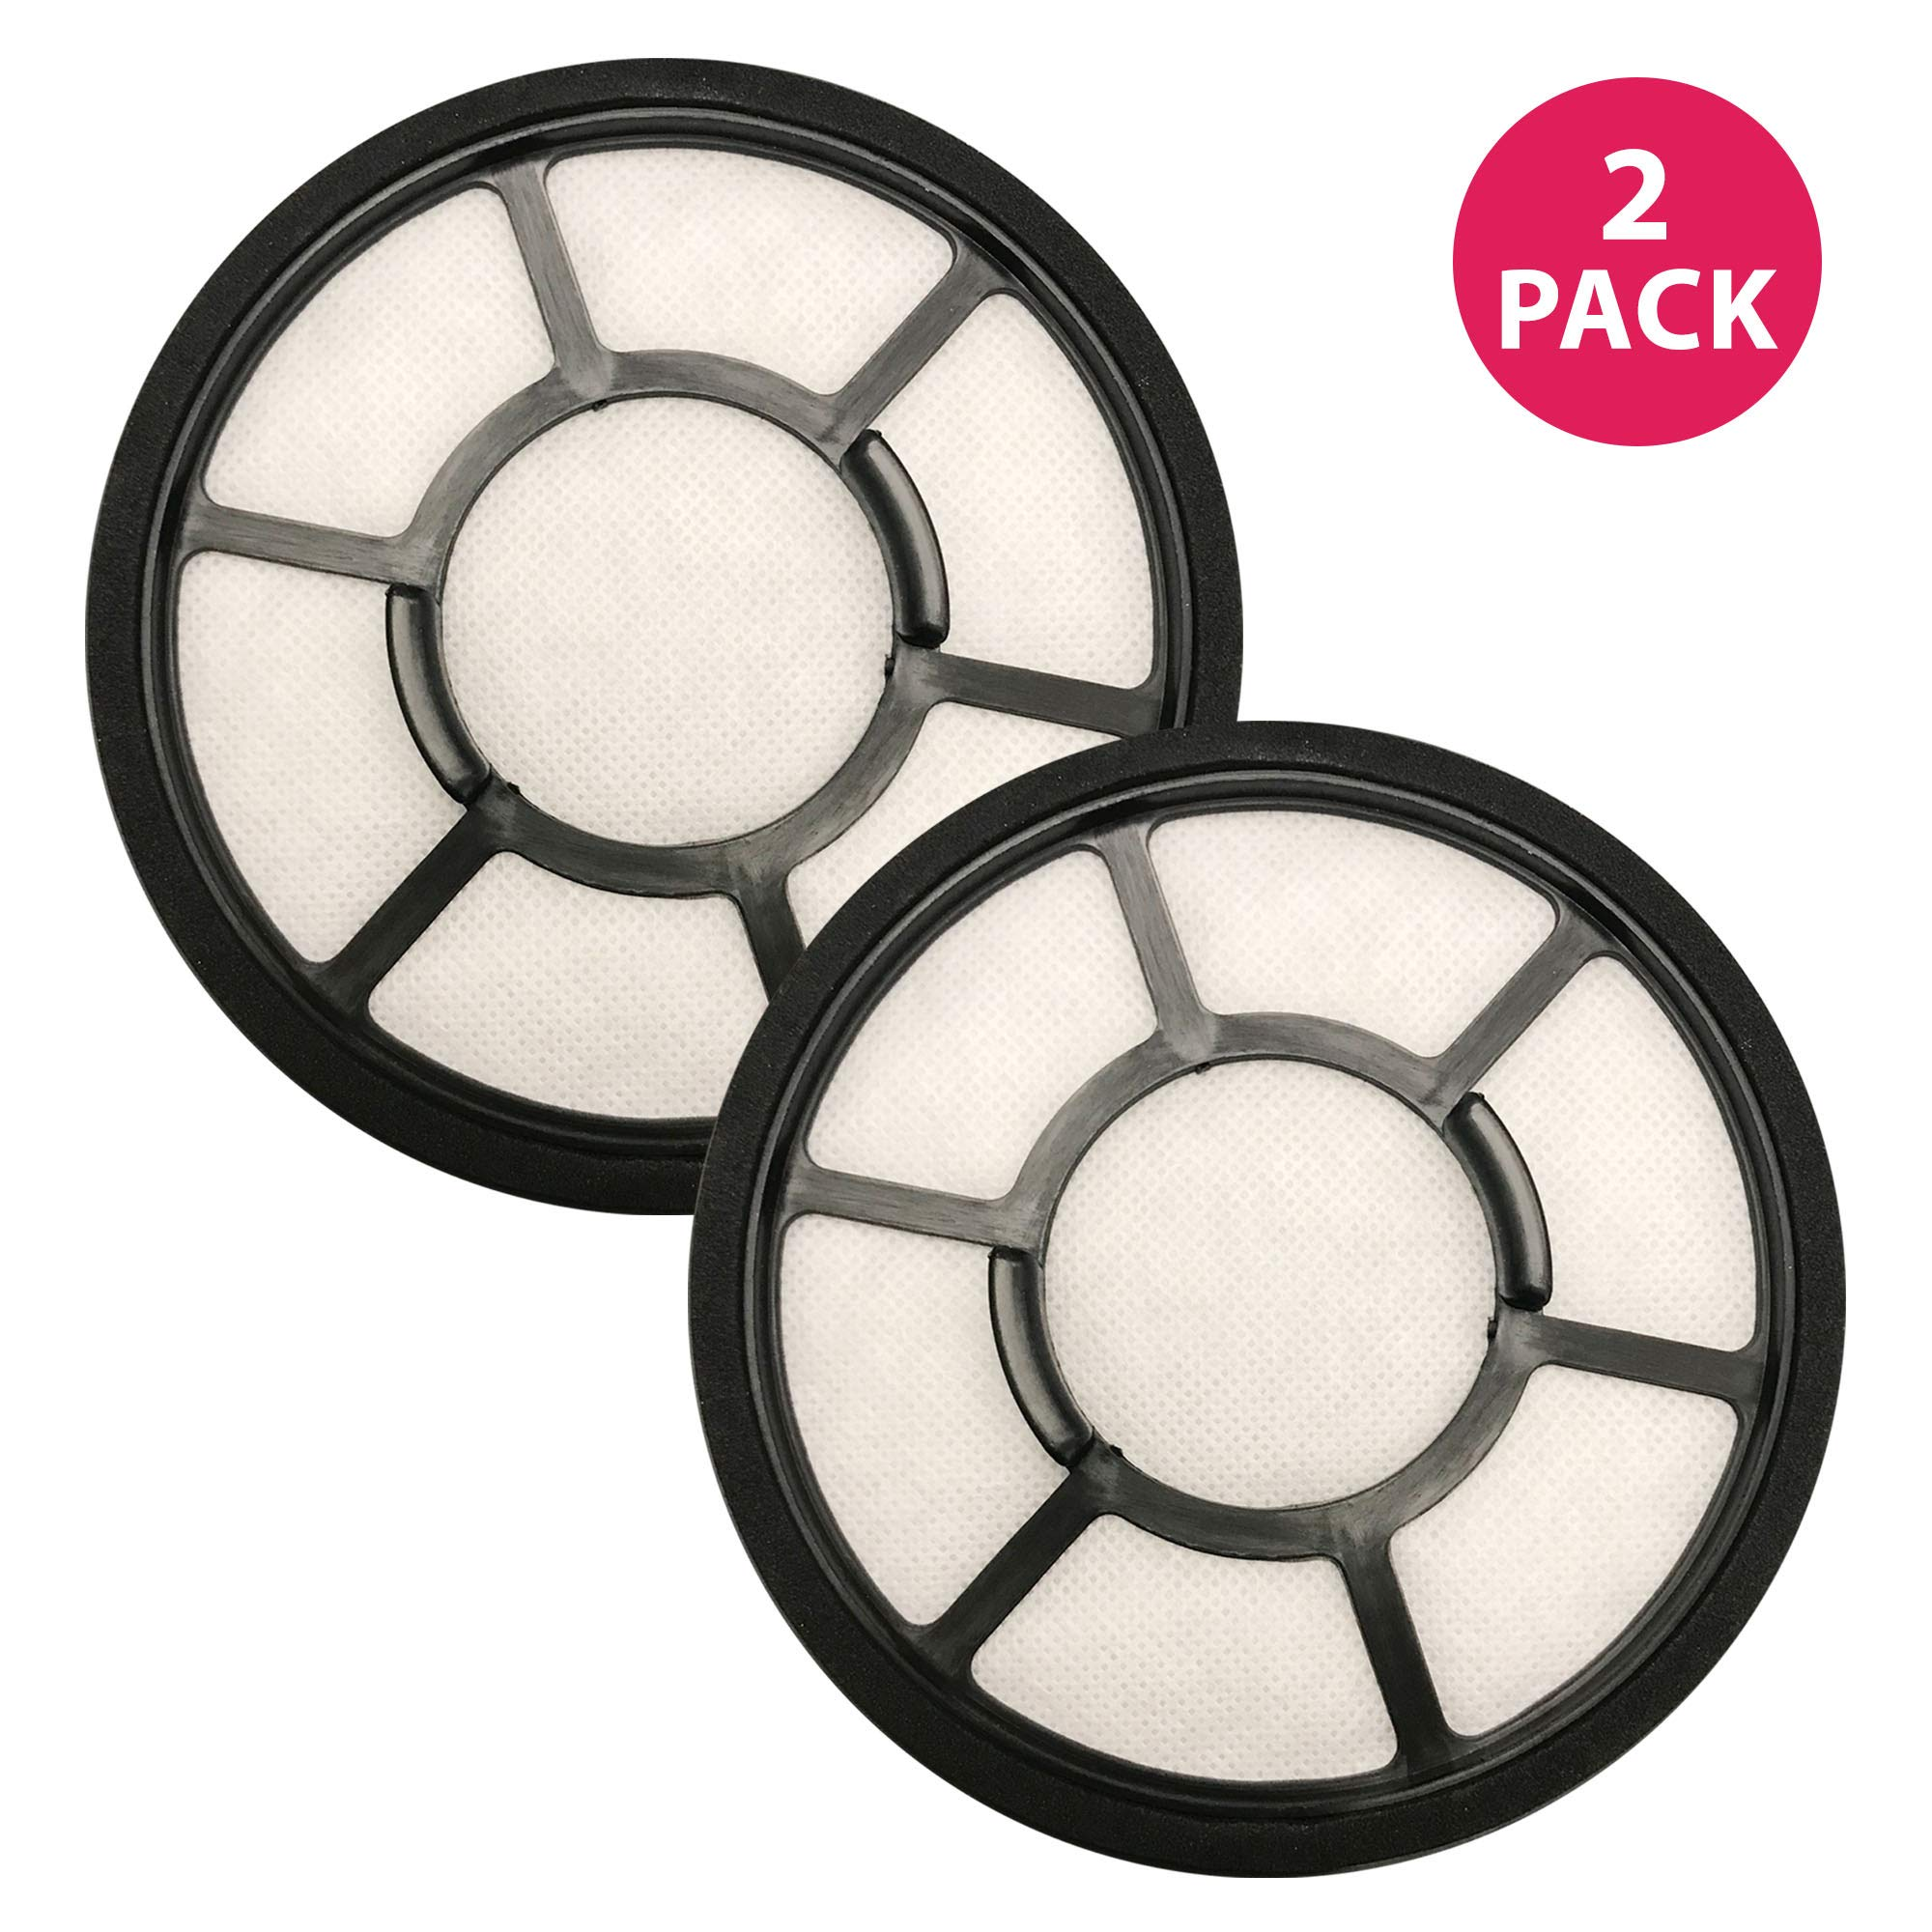 Think Crucial Replacement Vacuum Filters - Compatible with Black & Decker 5.5 x 5.5 x 1 Circular Pre Filter Part, Fits Vacuum Cleaner Model Parts BDASV102 Airswivel Vacuum Cleaners - (2 Pack)